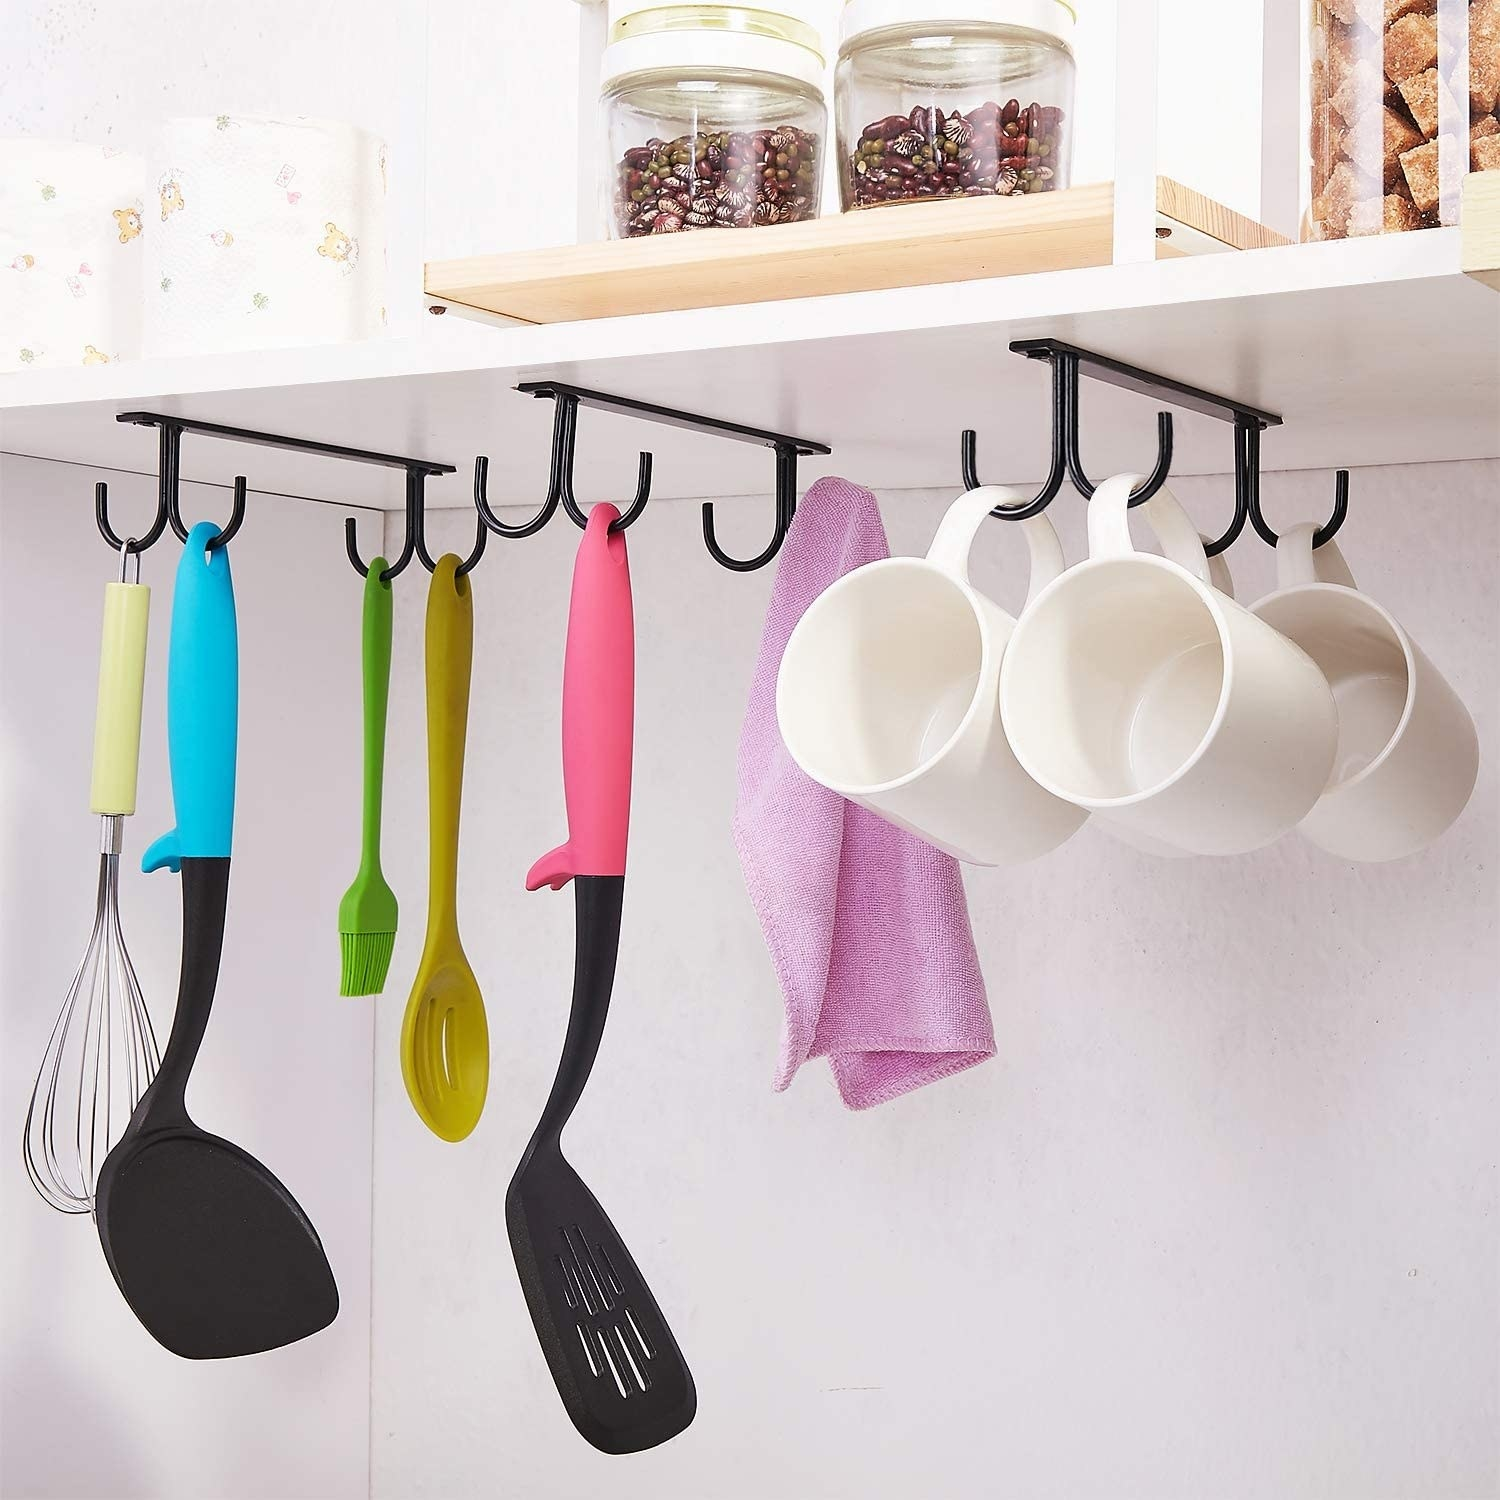 mugs and spatulas hanging off of the mounted hooks